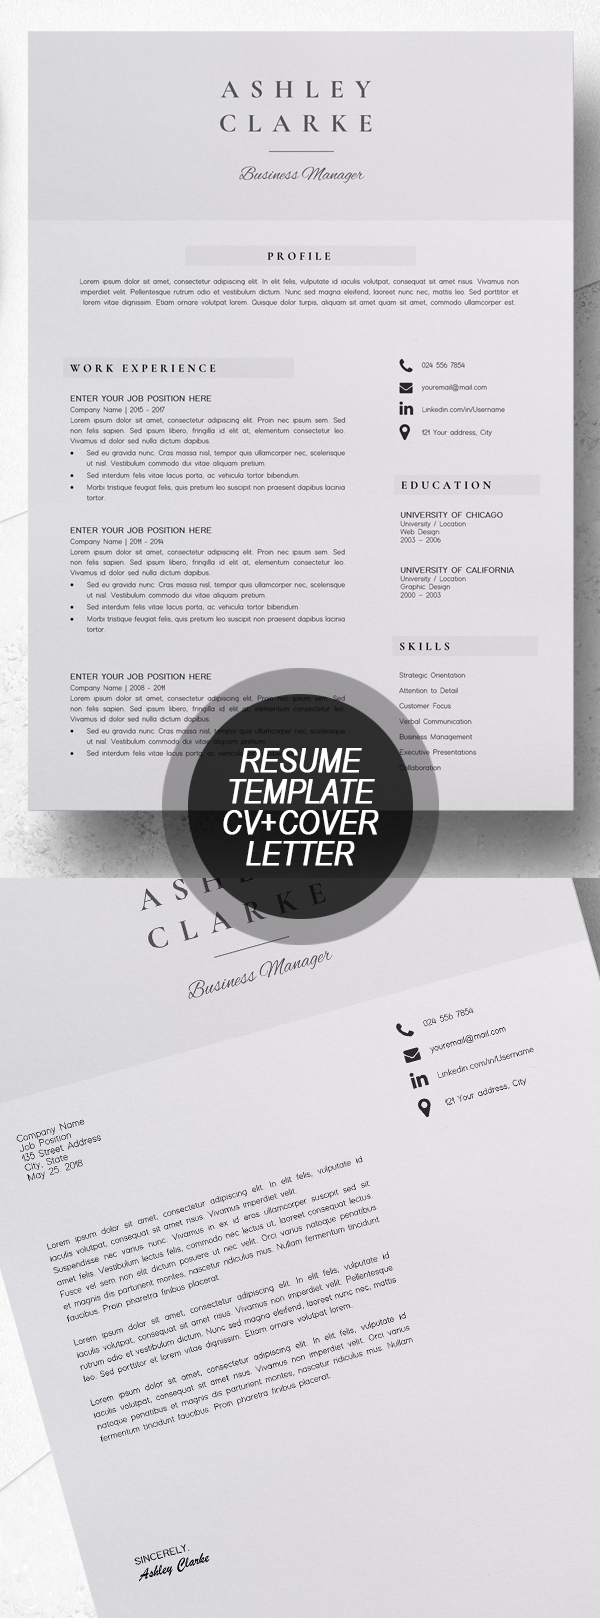 Resume Template  CV + Cover Letter #resumedesign